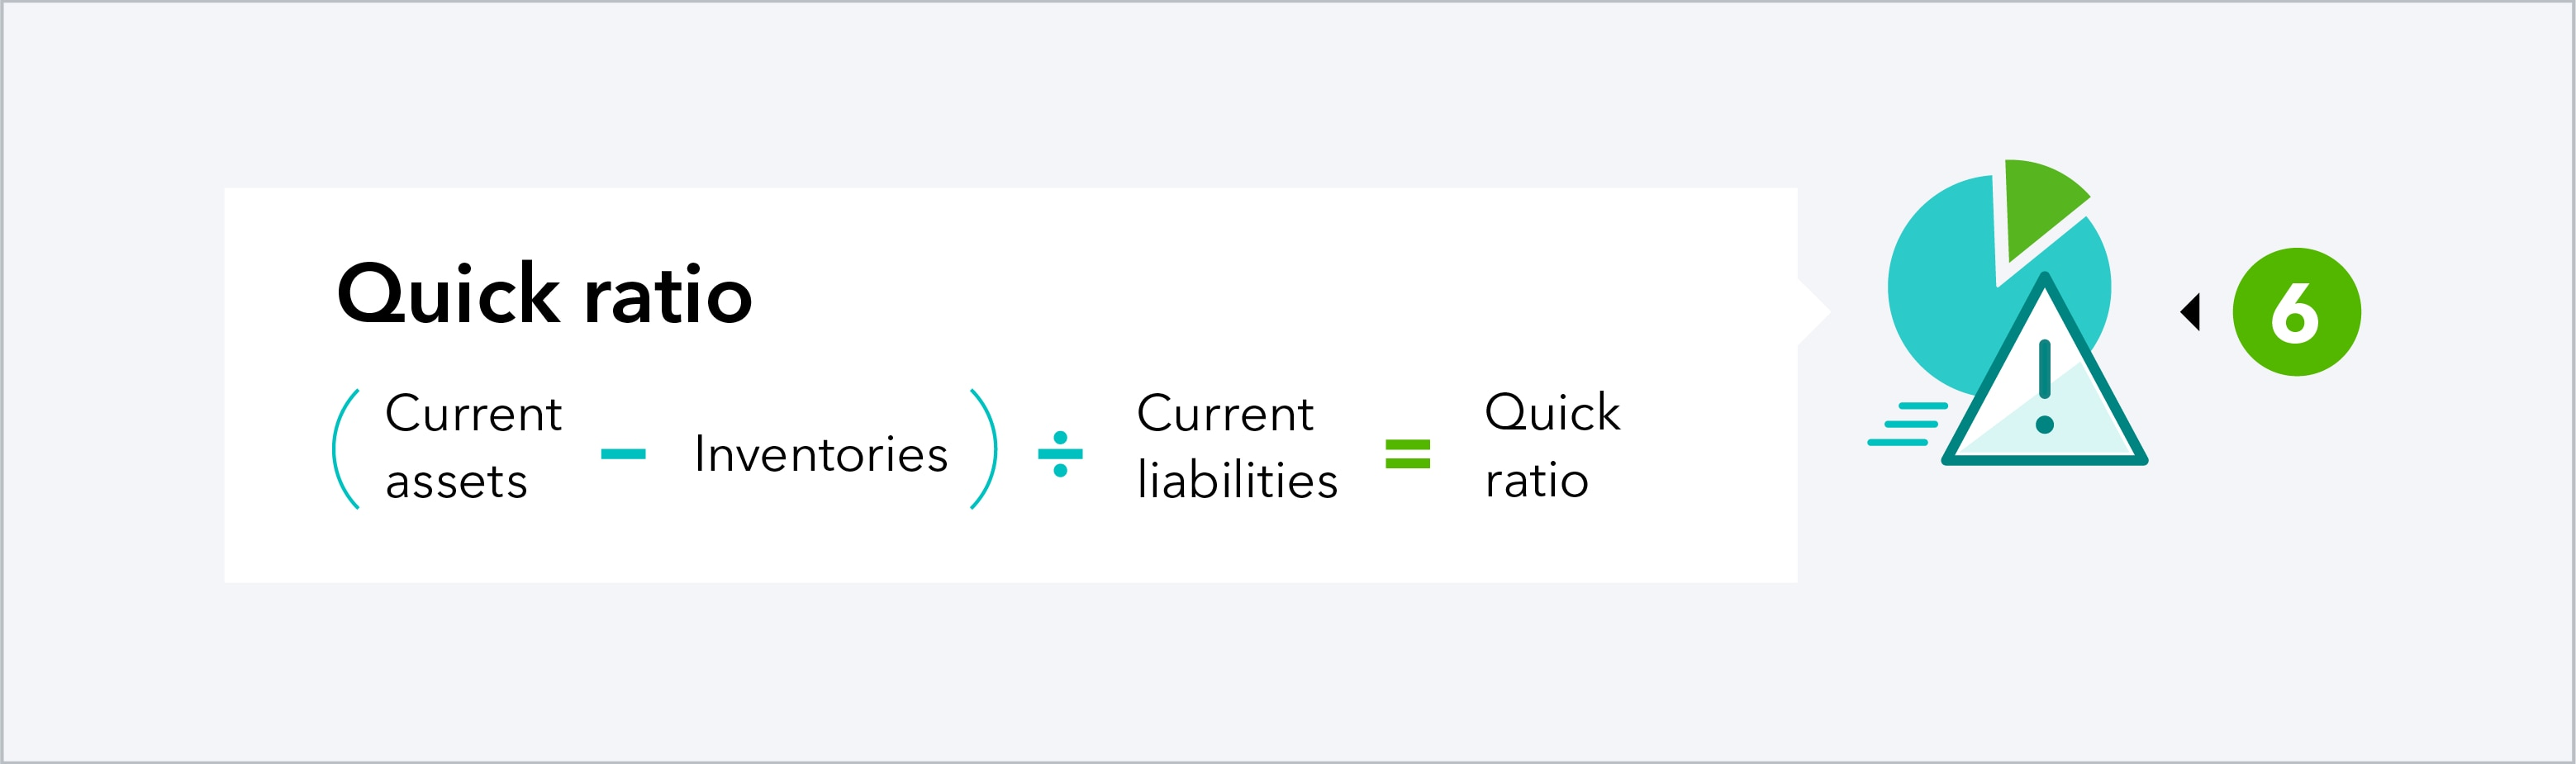 KPIs for small businesses: Quick ratio